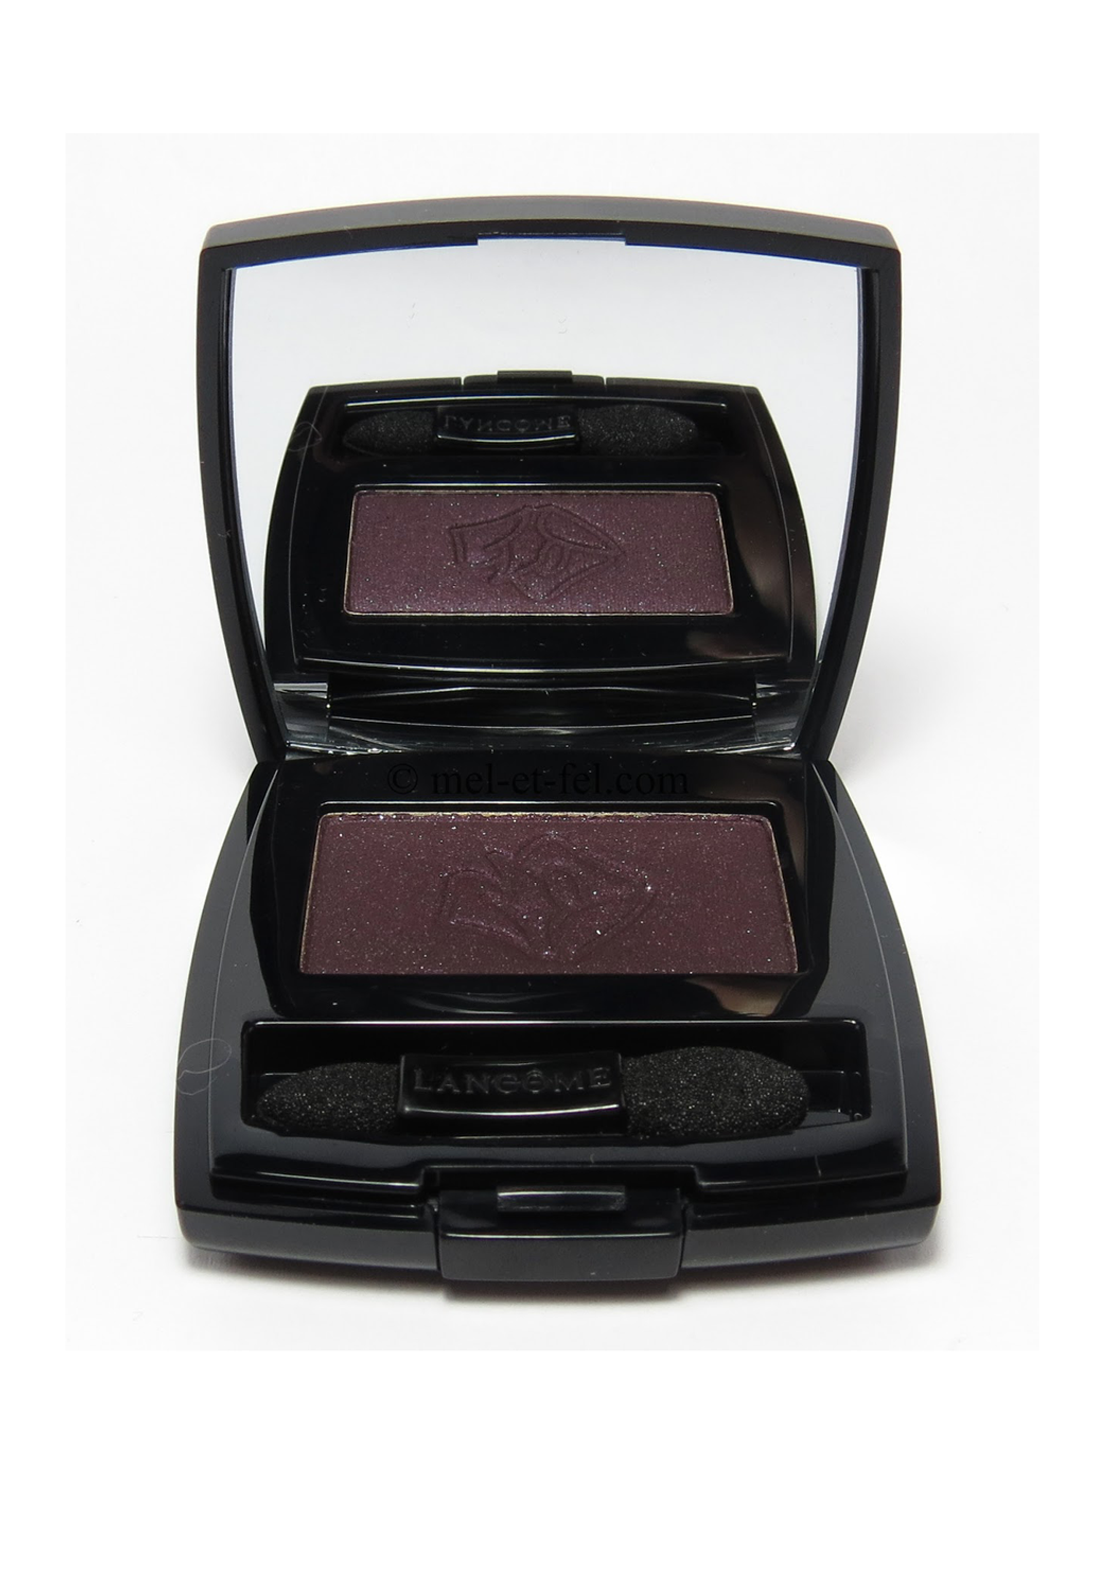 Lancome Ombre Hypnose Sparkling Colour High Fidelity Eyeshadow, Violet Divin S304